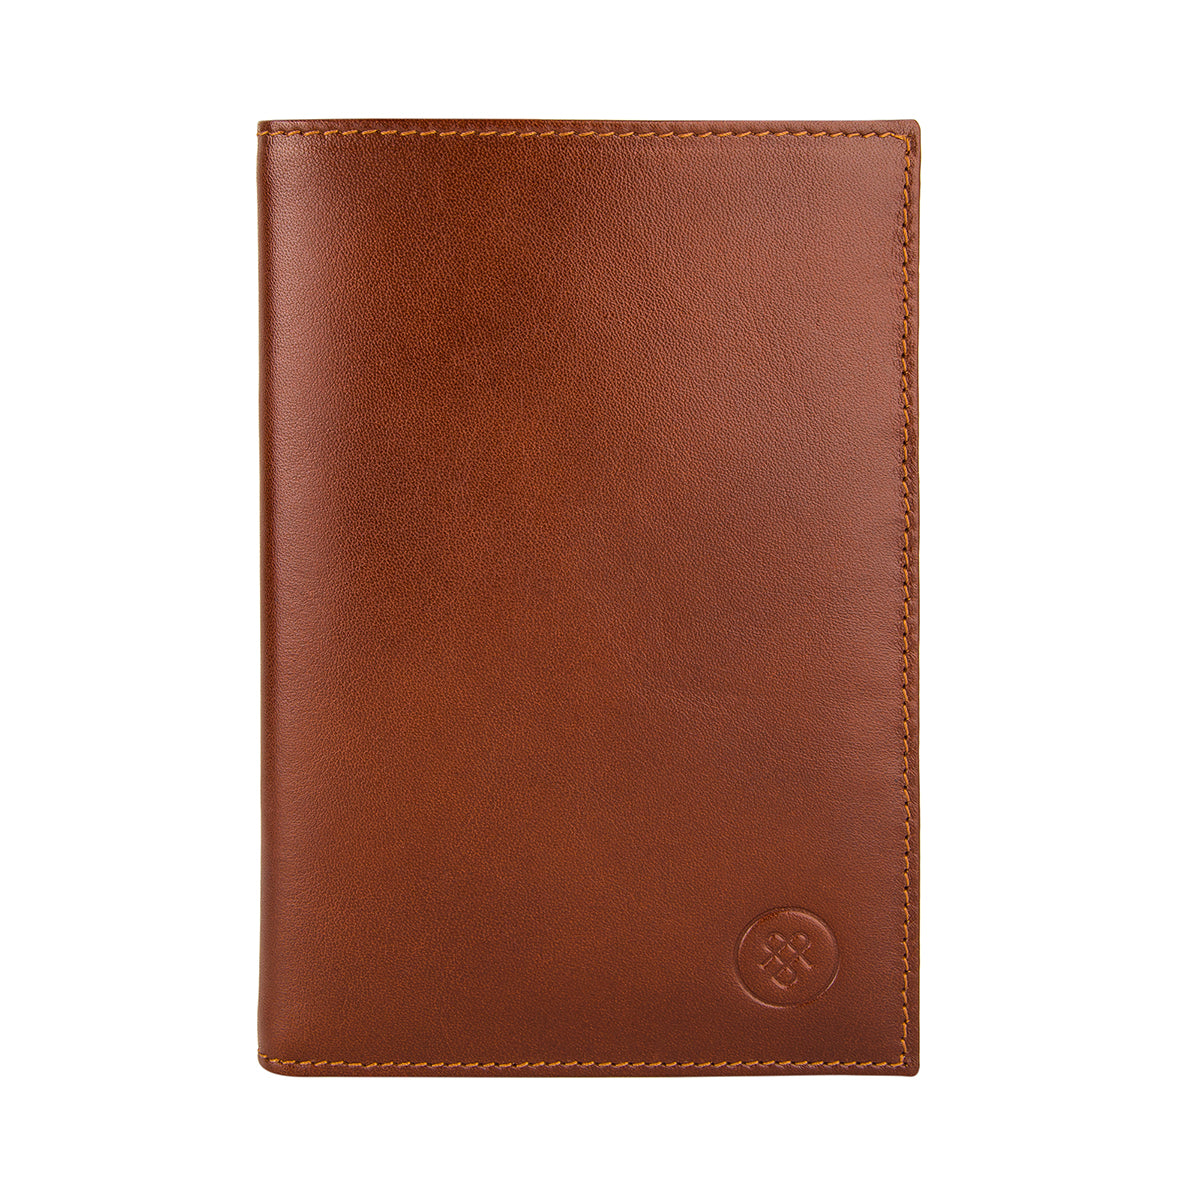 Image 1 of the Men's Tan Leather Jacket Wallet